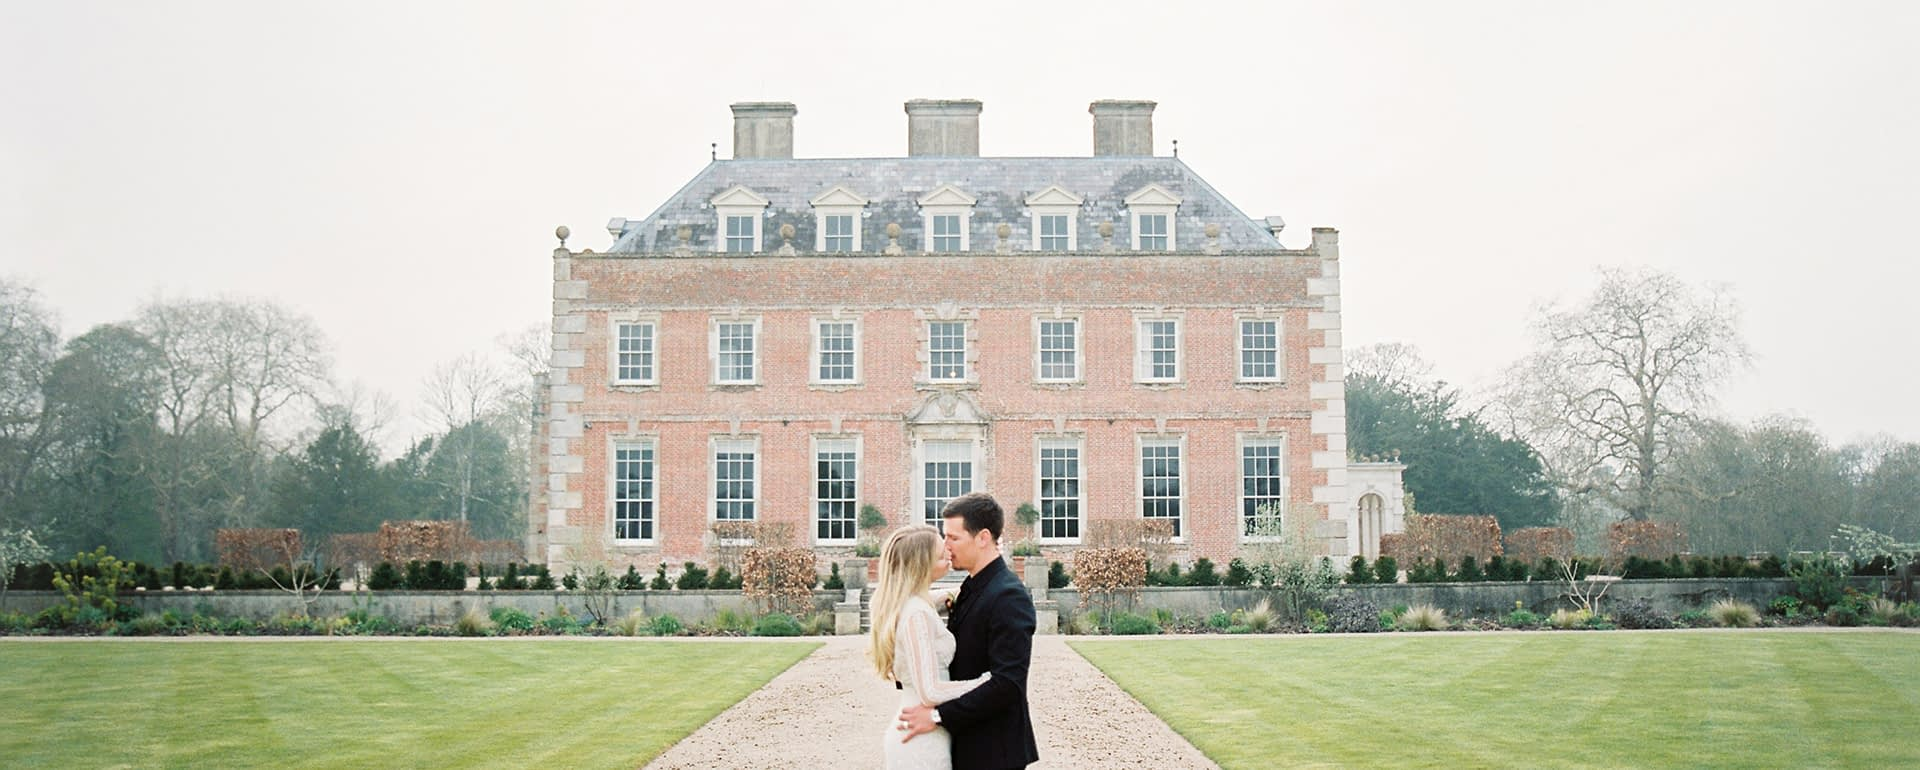 15 of the Best Country House Wedding Venues